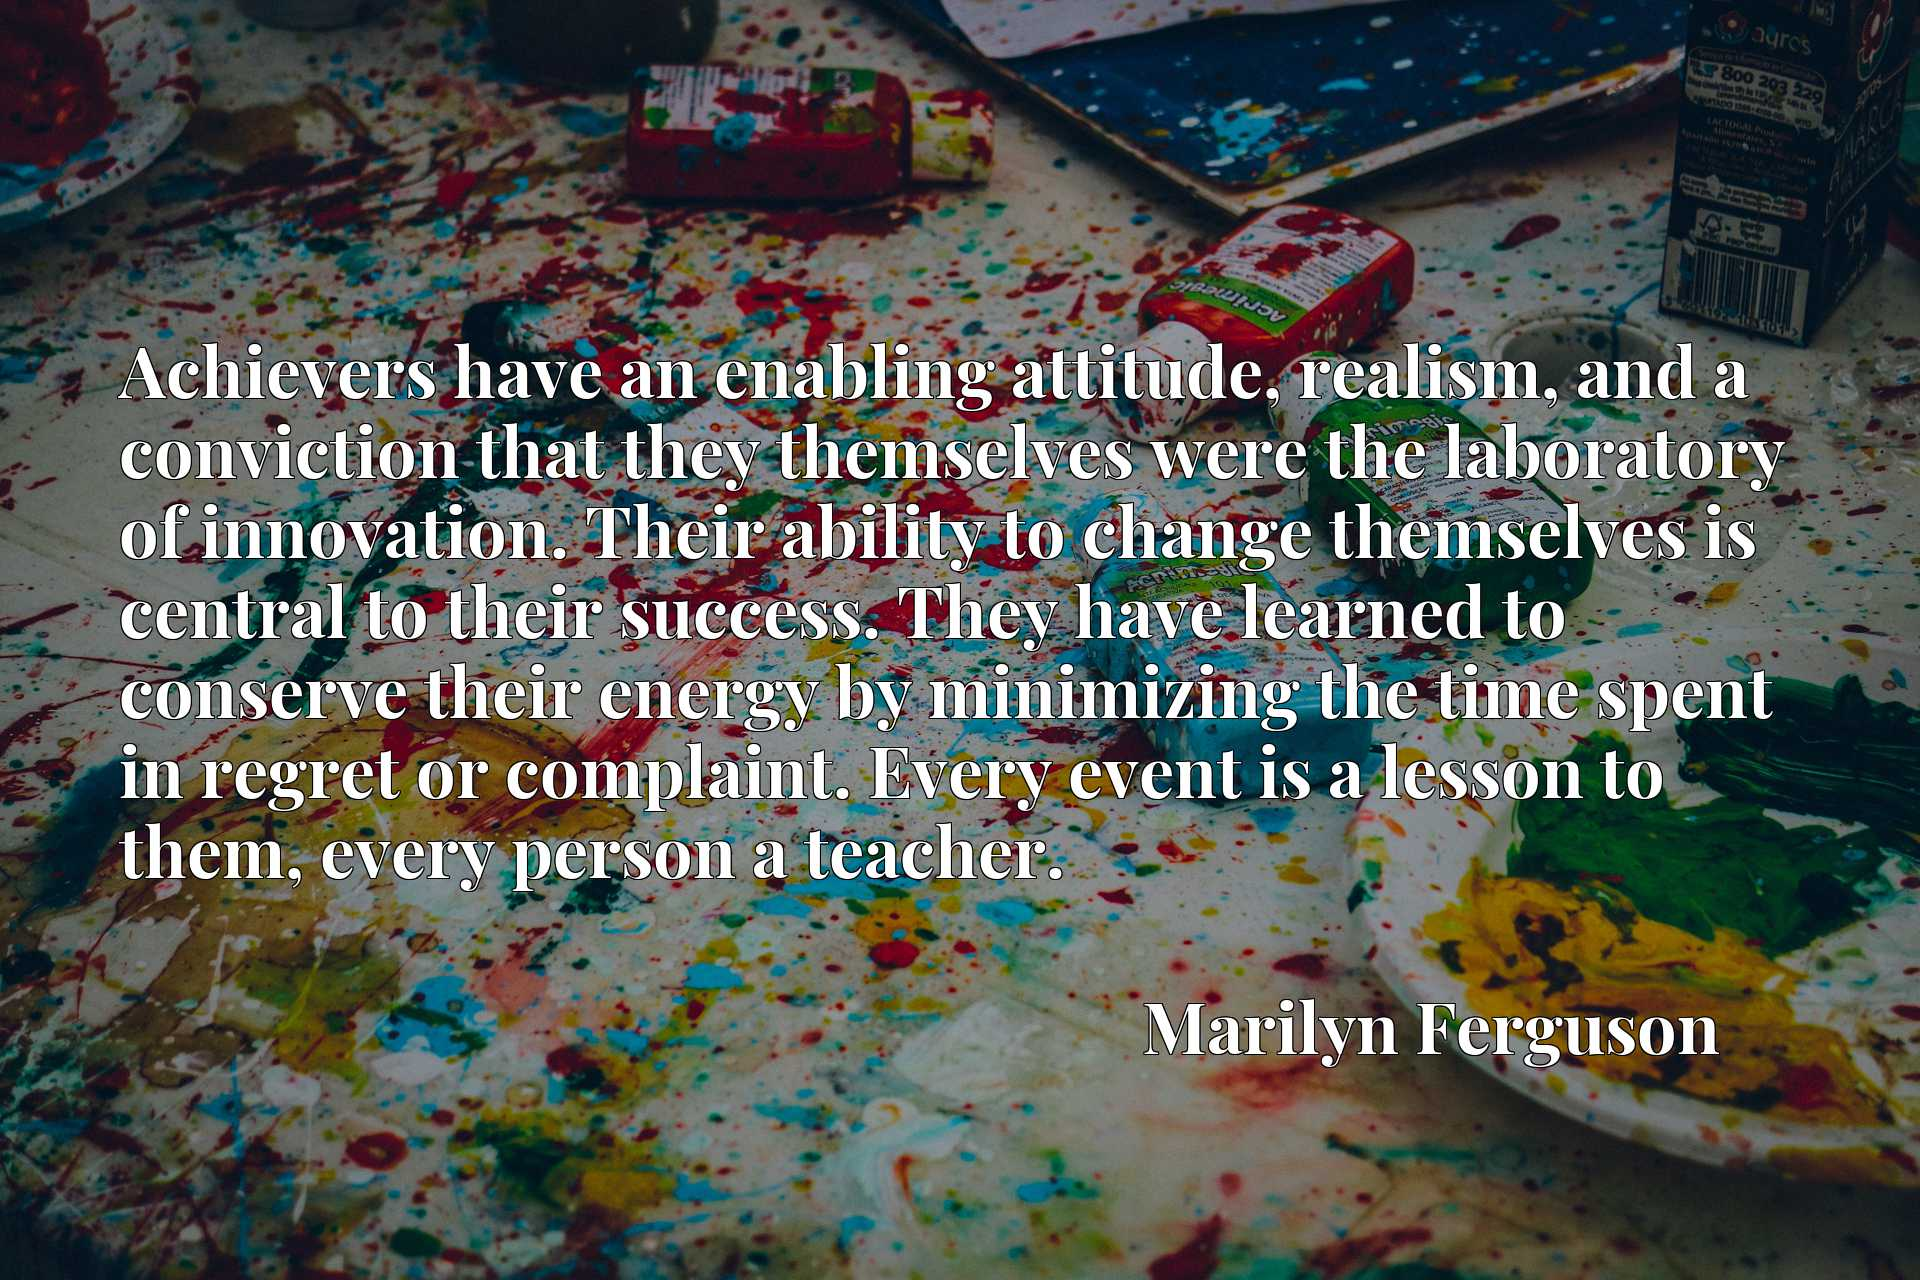 Achievers have an enabling attitude, realism, and a conviction that they themselves were the laboratory of innovation. Their ability to change themselves is central to their success. They have learned to conserve their energy by minimizing the time spent in regret or complaint. Every event is a lesson to them, every person a teacher.